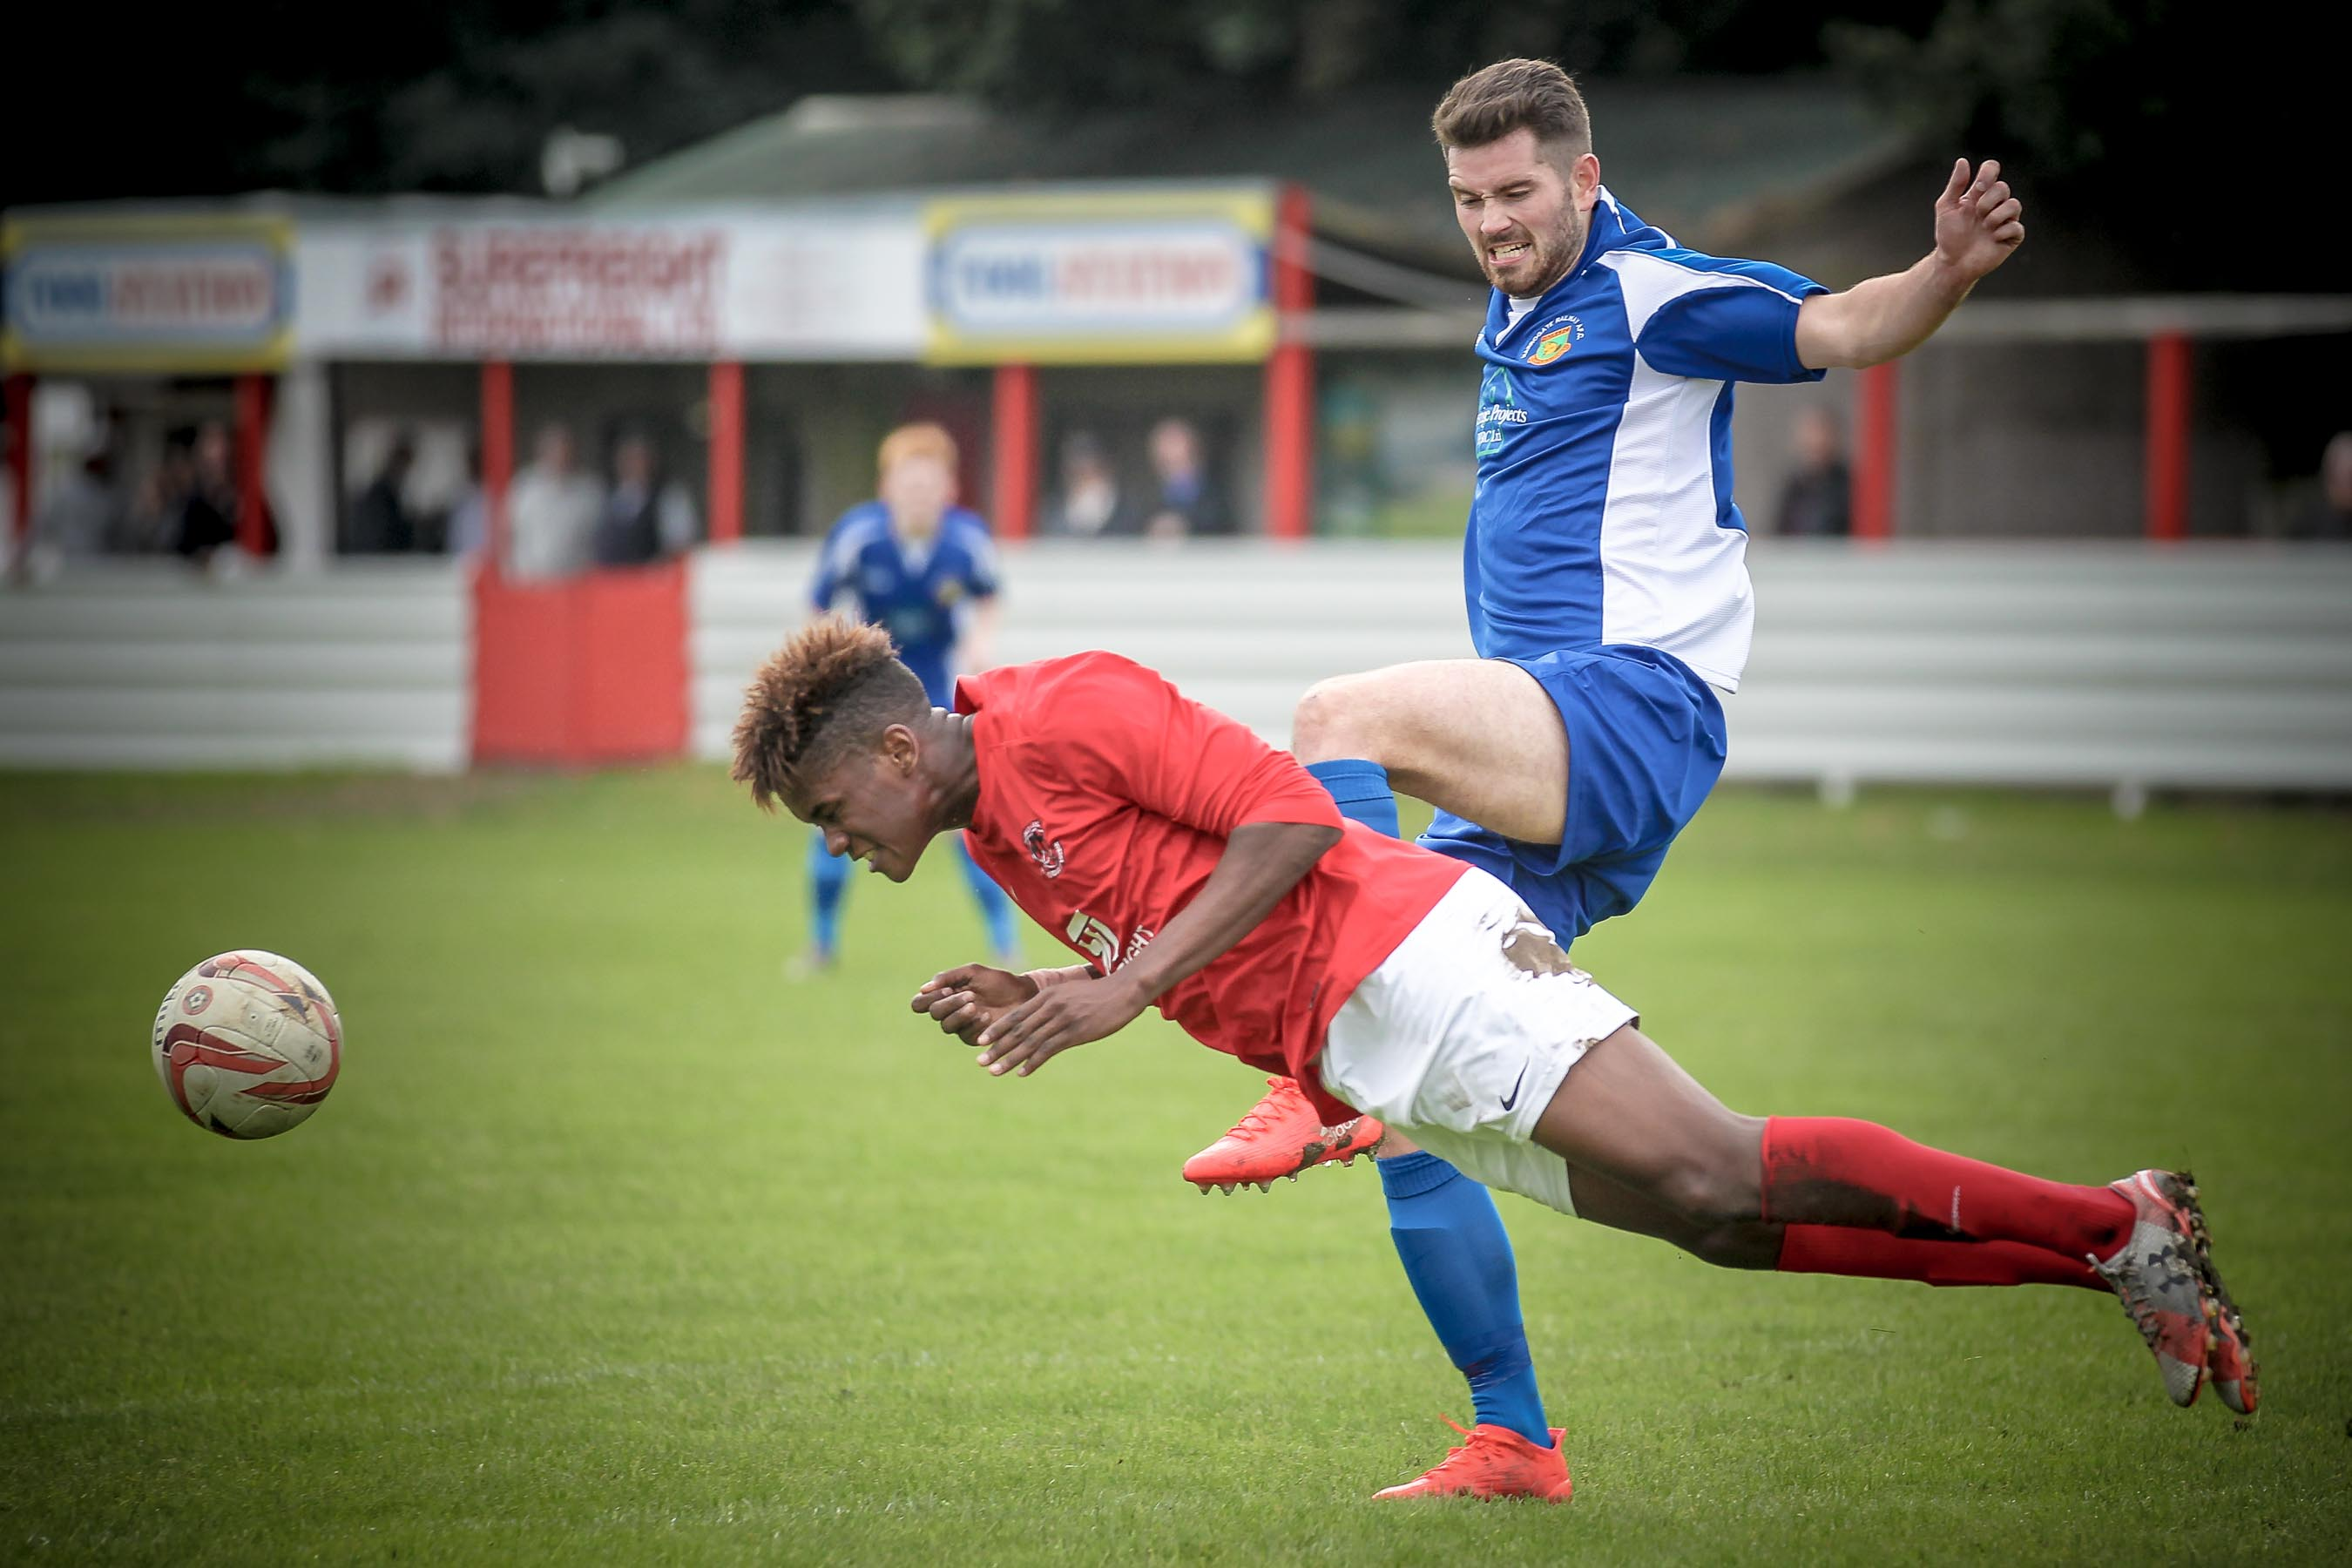 Thackley defender gets a header in as Greg Kidd pulls out from the challenge.